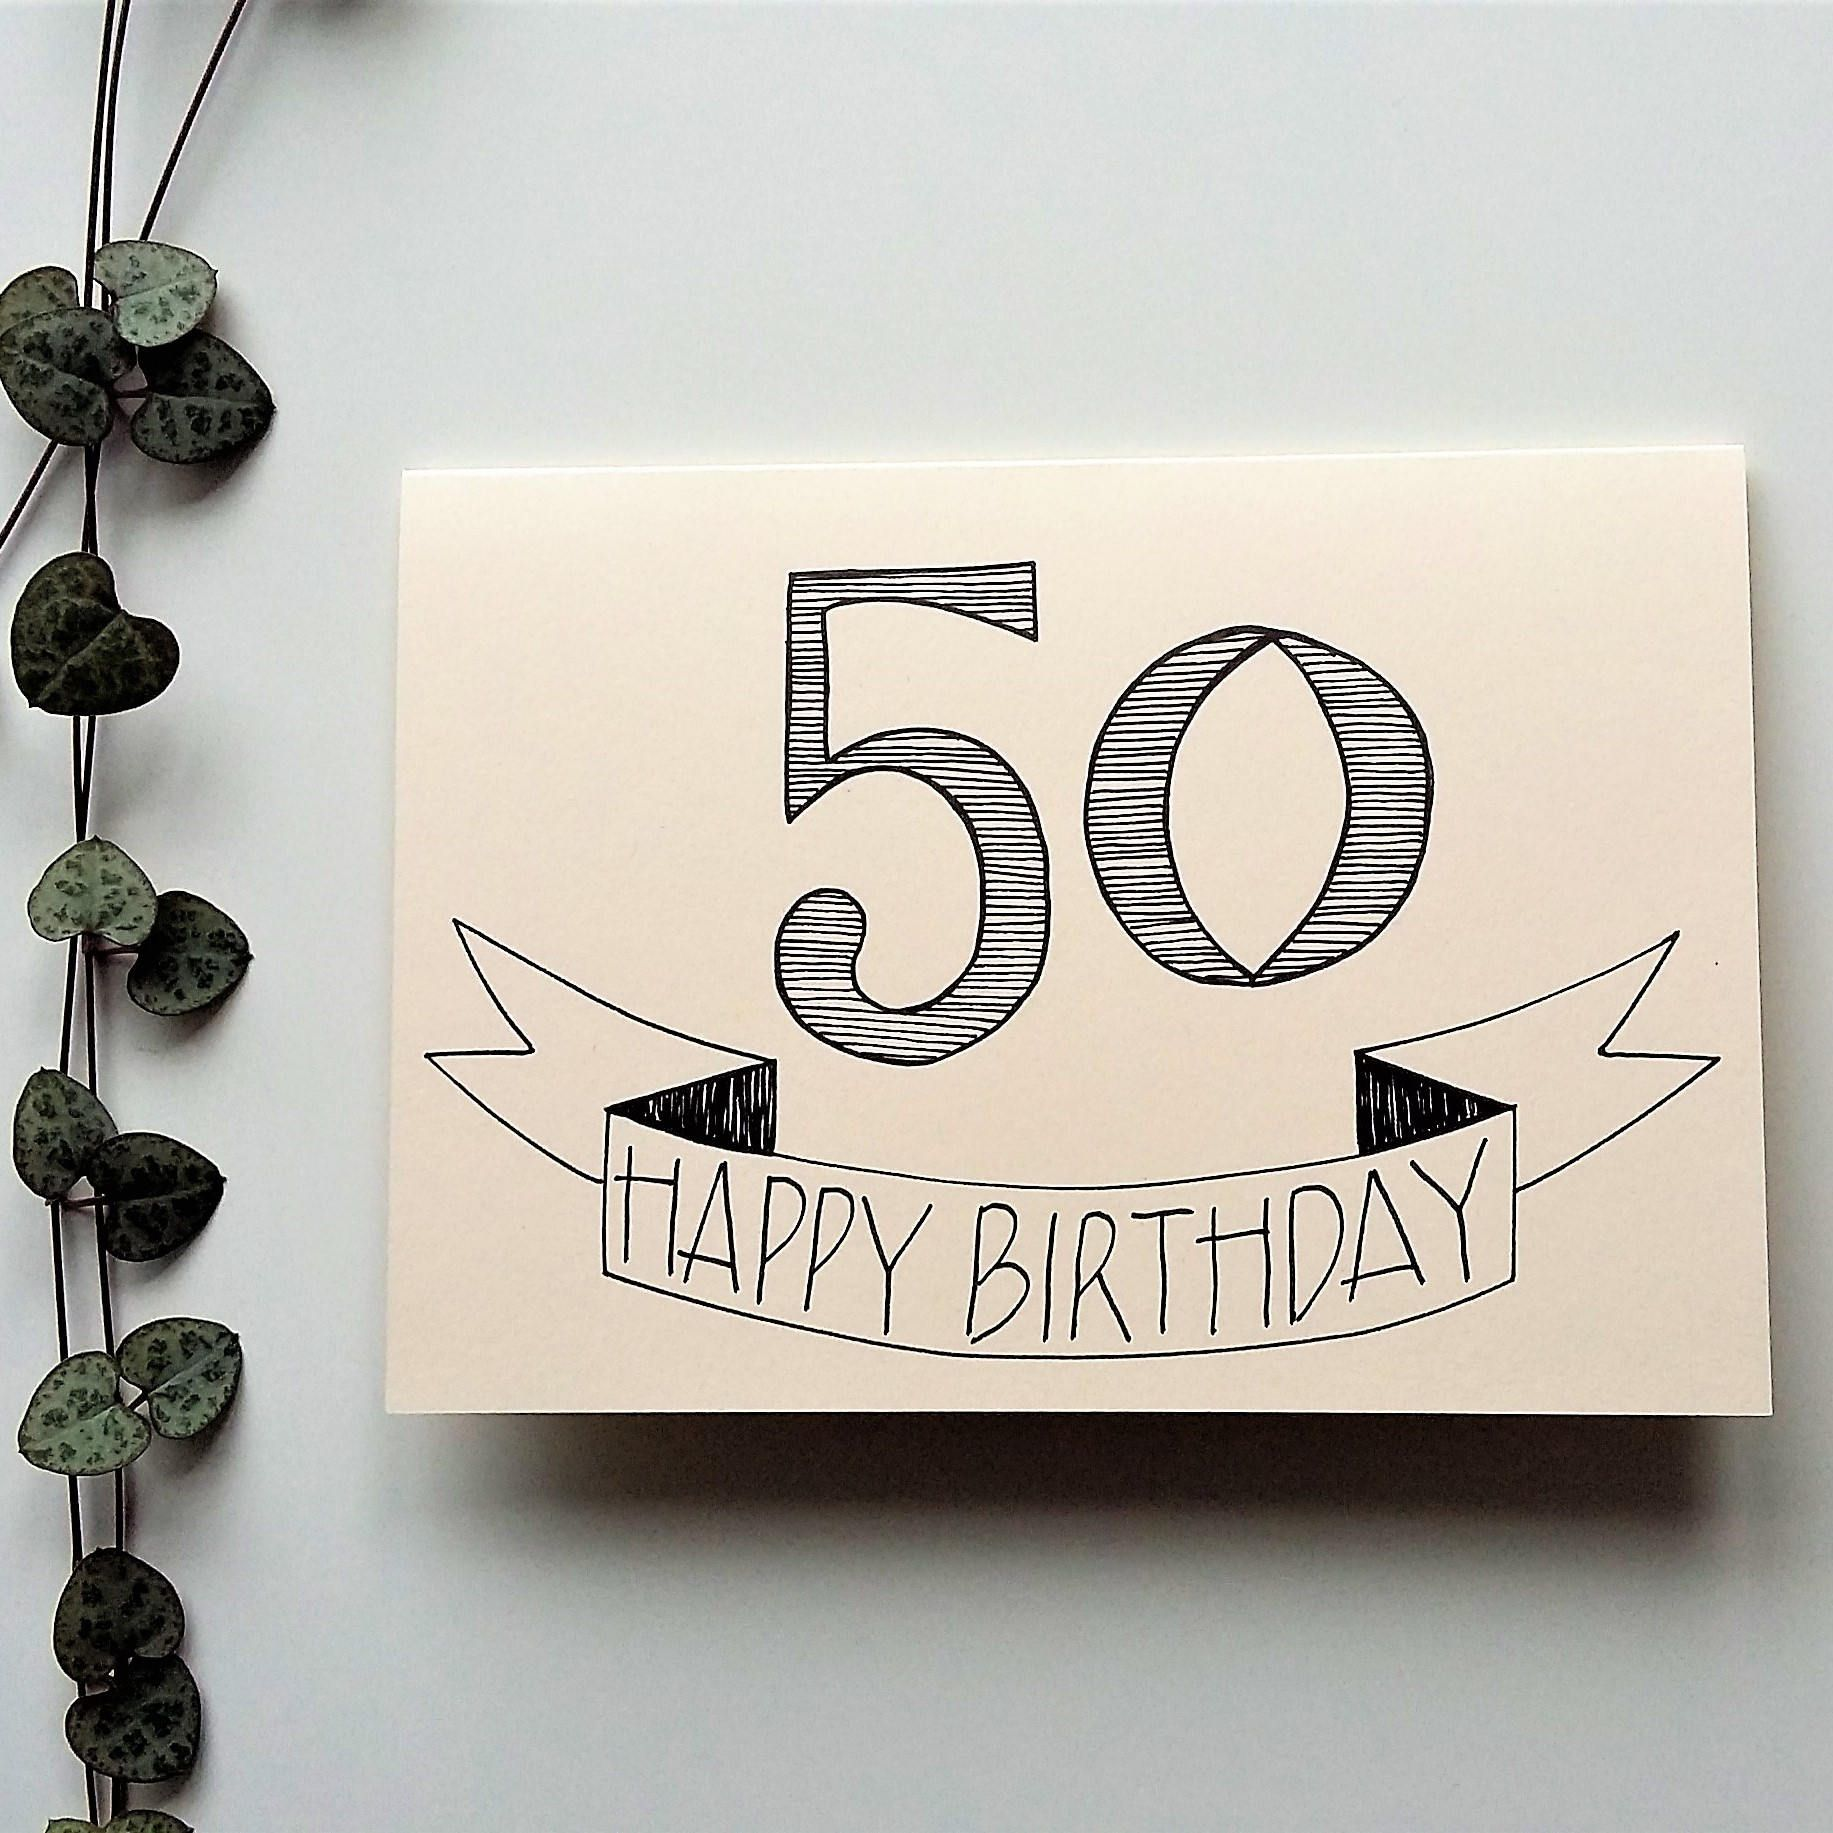 50th Birthday Card A6 Hand Drawn Birthday Card Handmade Hand Drawn Cards By Beck S Creative Birthday Card Drawing 50th Birthday Cards Birthday Cards For Men